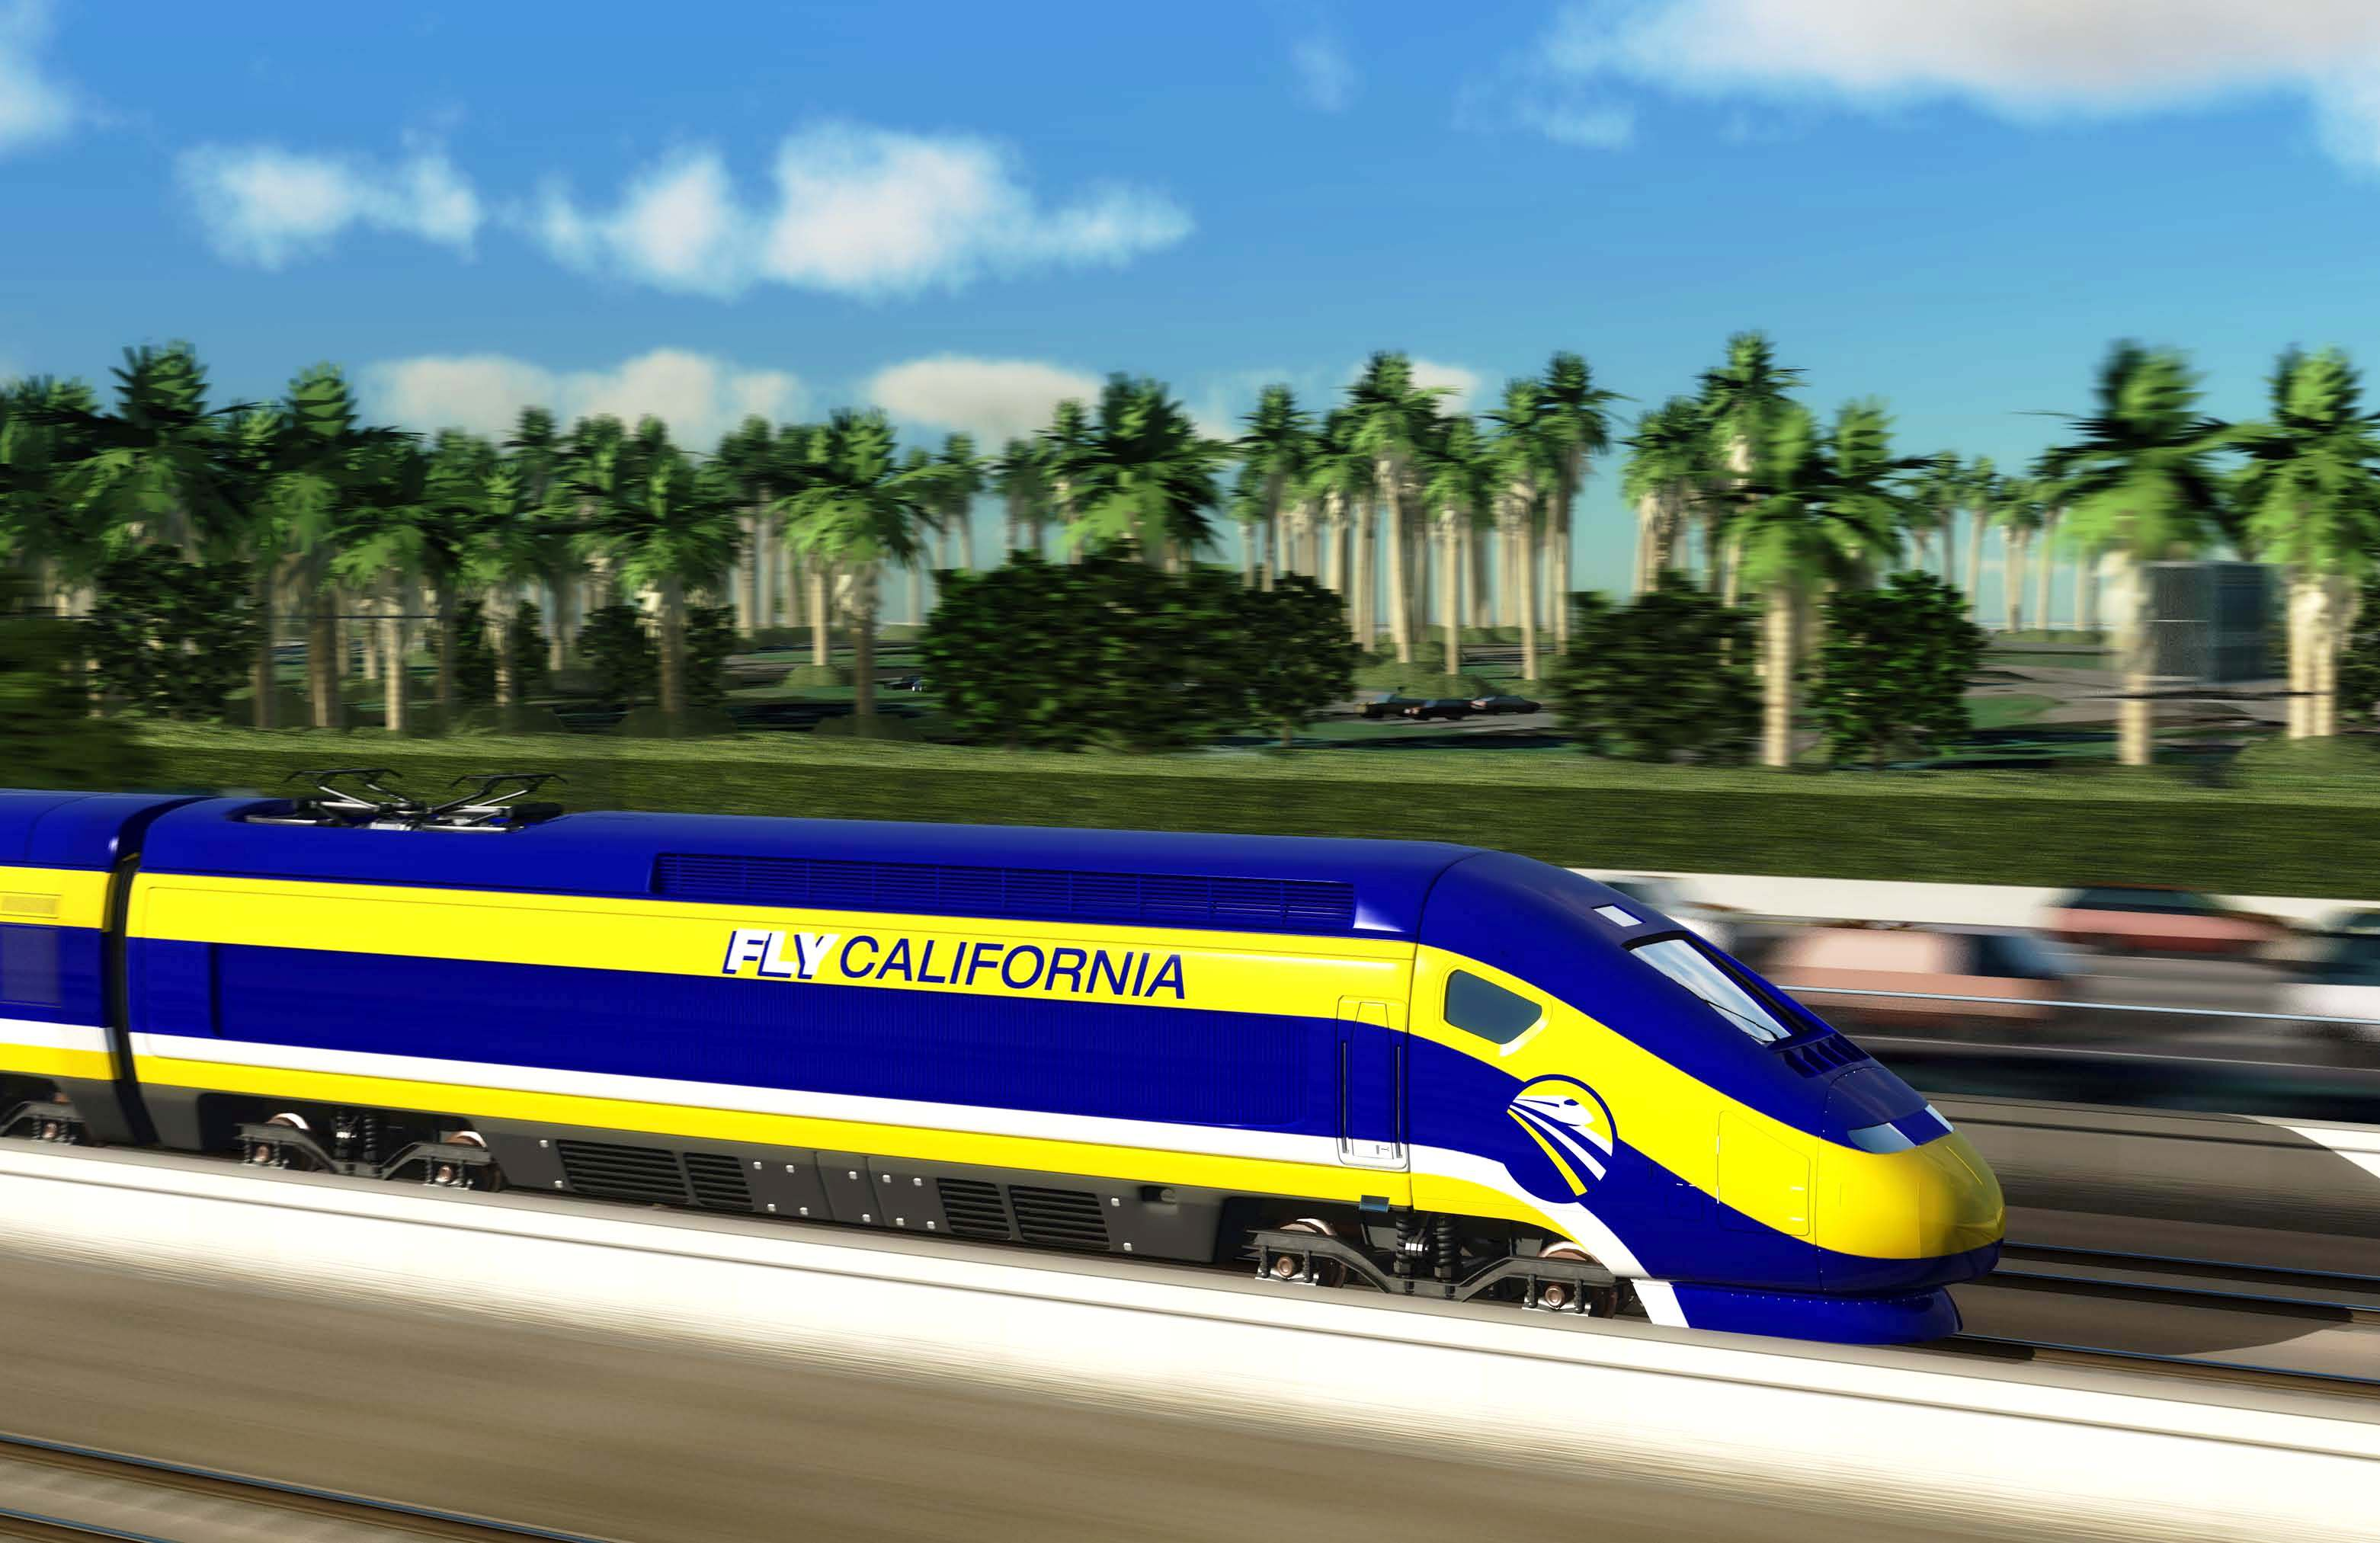 Technology advances could alter 'green' transportation picture